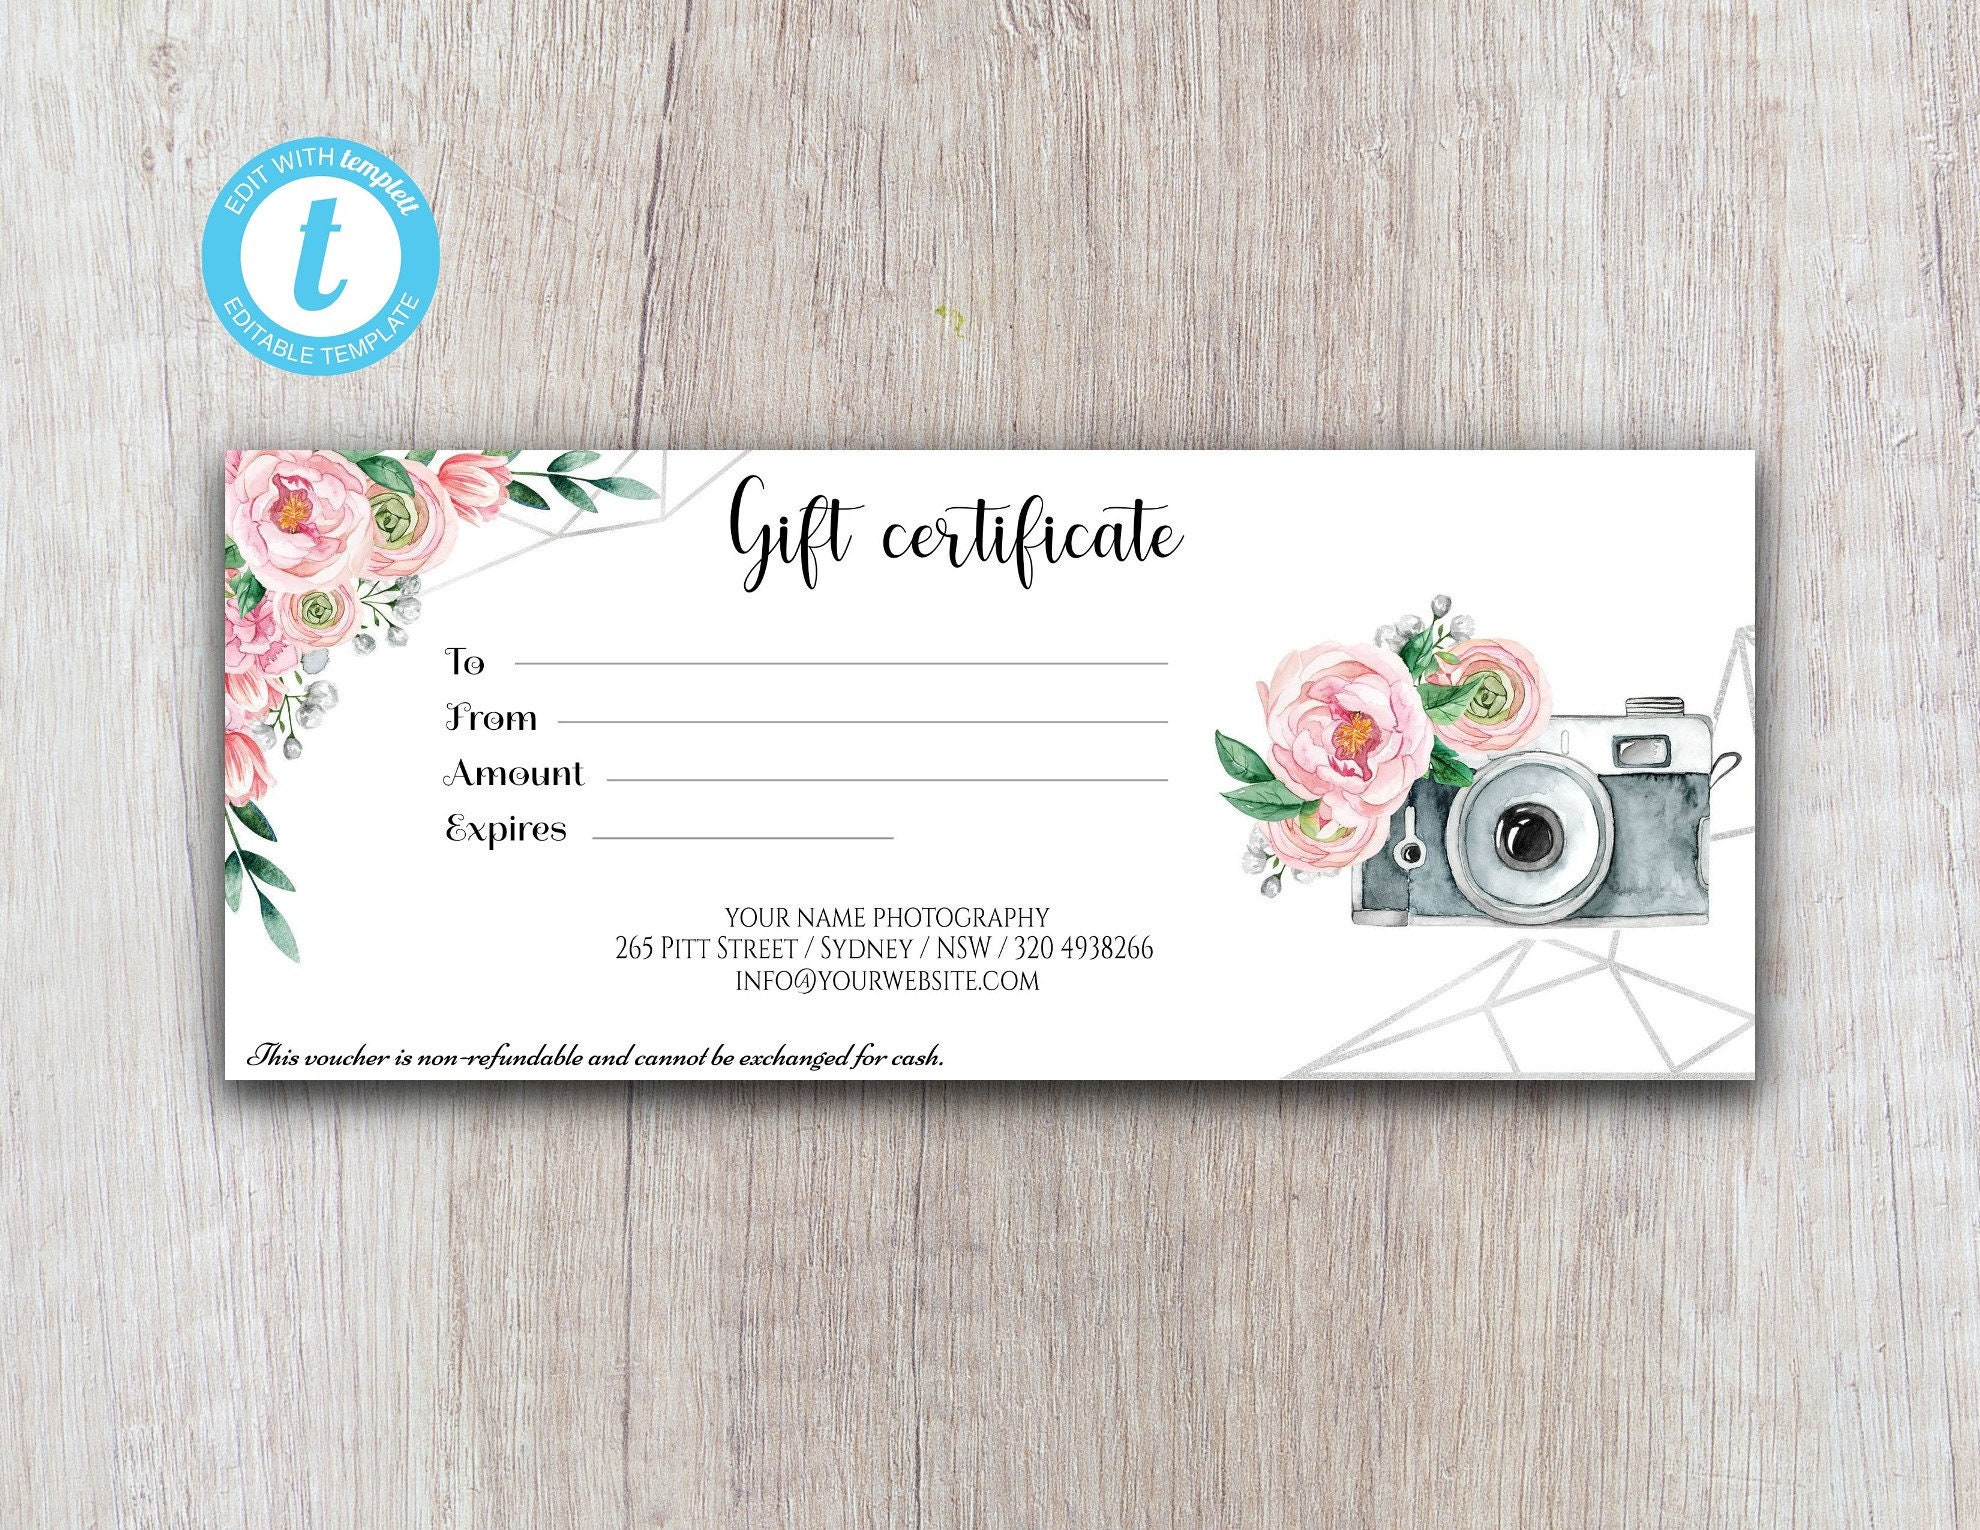 Photography Gift Certificate Templates  Printable Gift Certificate,  Editable Template, Instant Download For Free Photography Gift Certificate Template